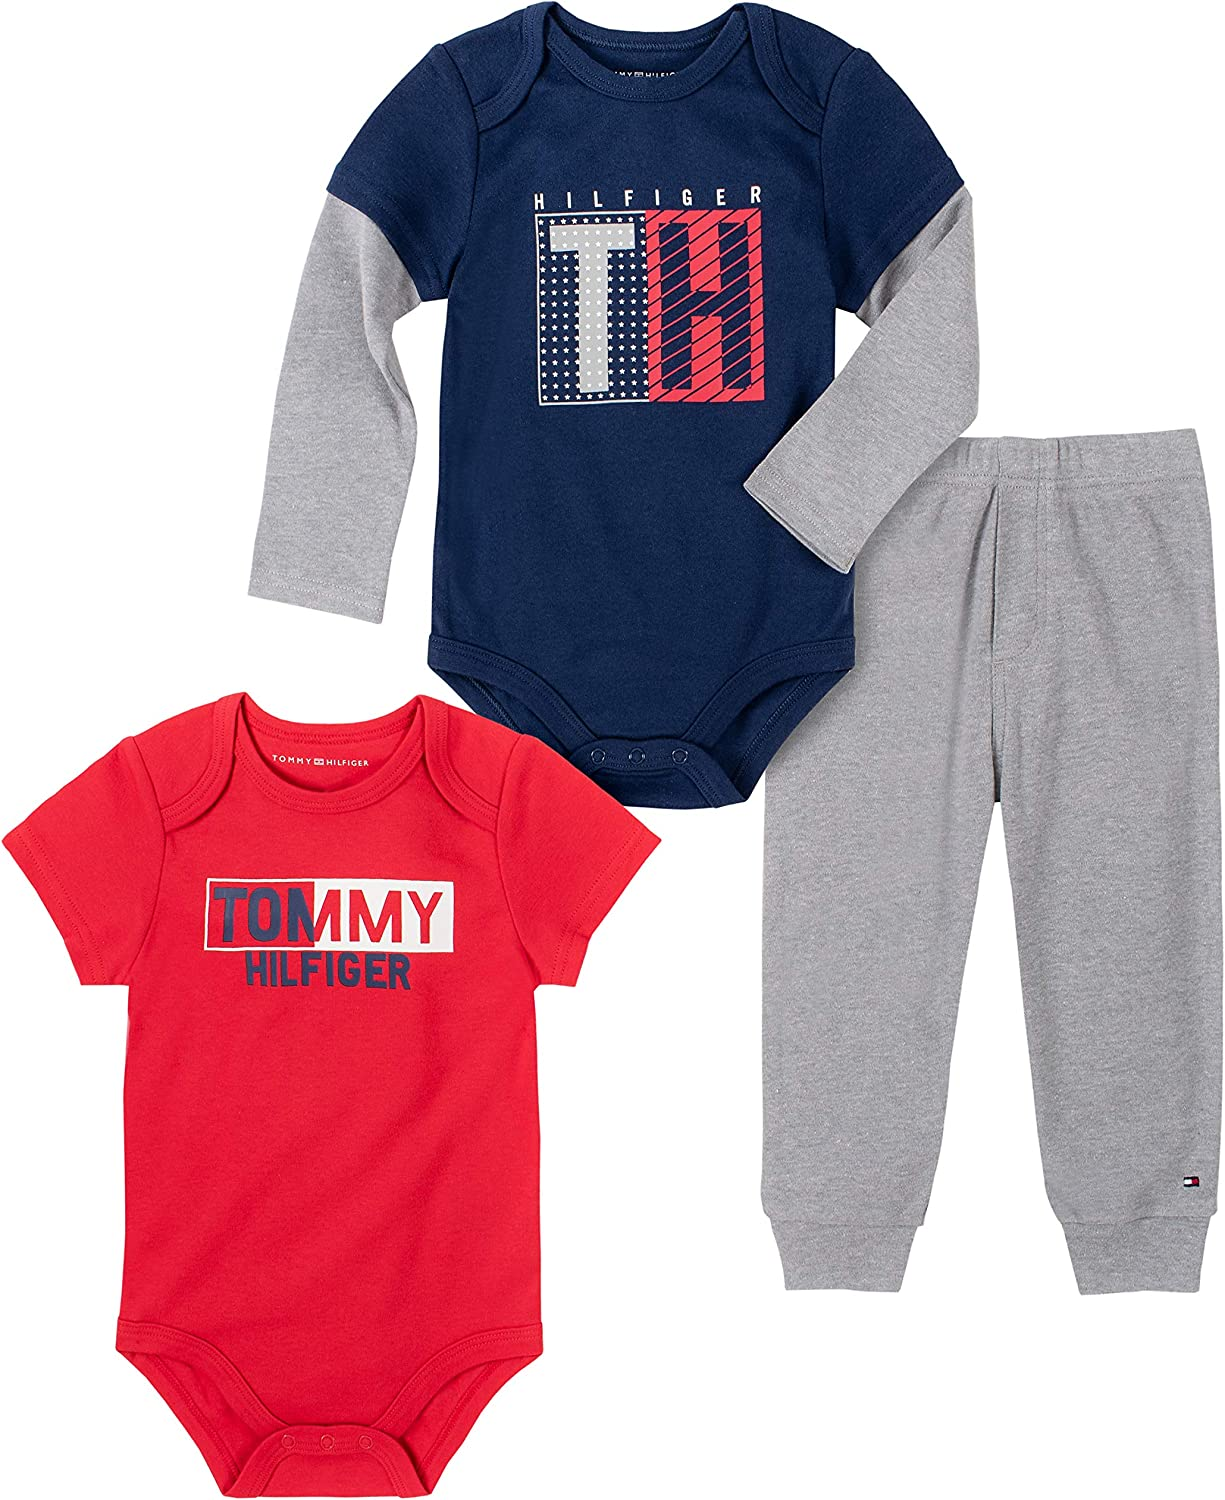 Tommy Hilfiger baby-boys 3 Bodysuit Pants New York Mall Pieces Max 51% OFF Set